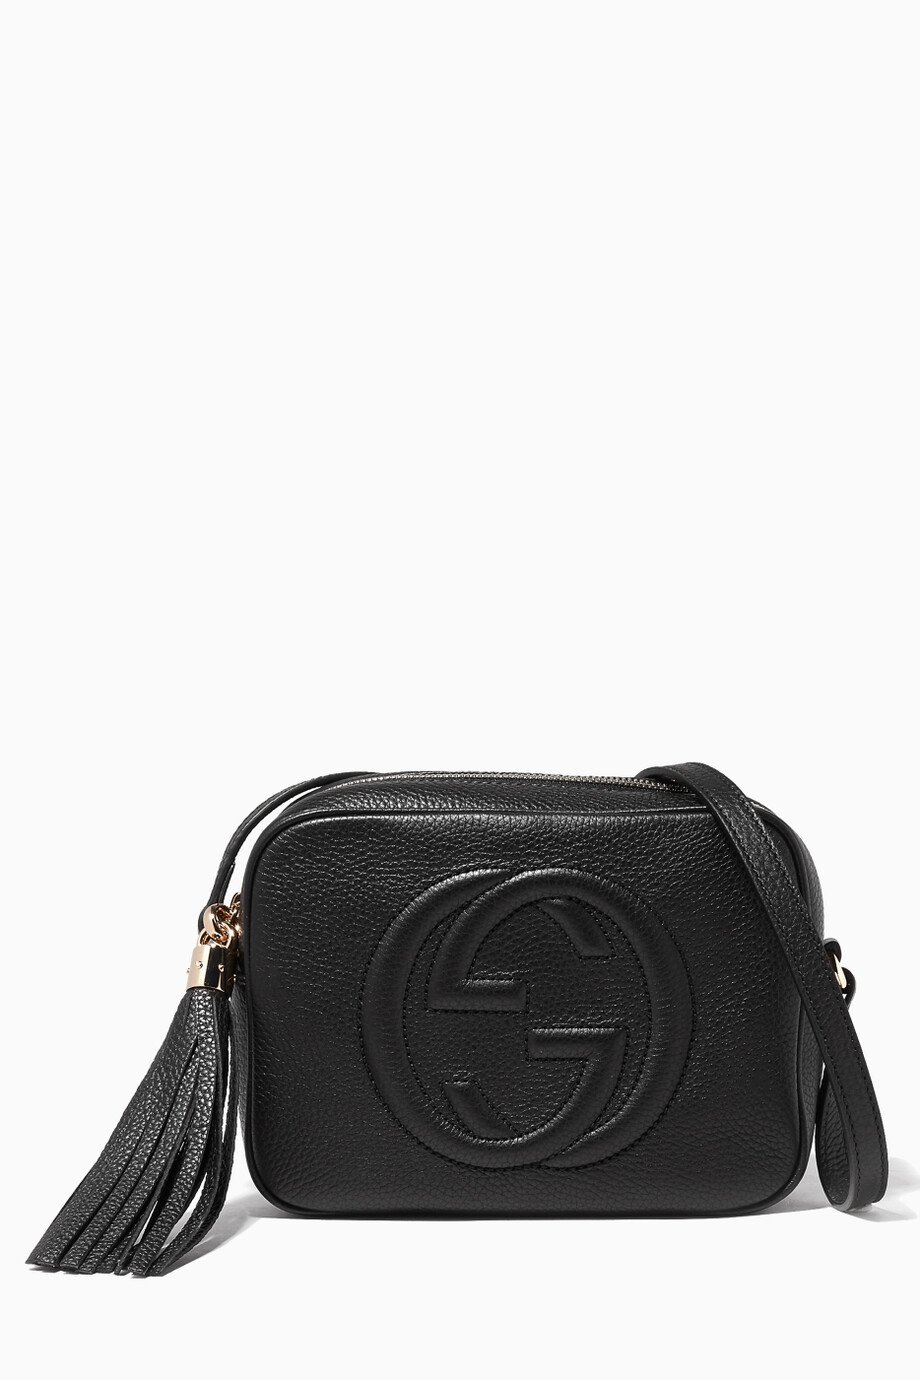 67e137cf90099a Shop Gucci Black Black Soho Leather Disco Bag for Women | Ounass Bahrain